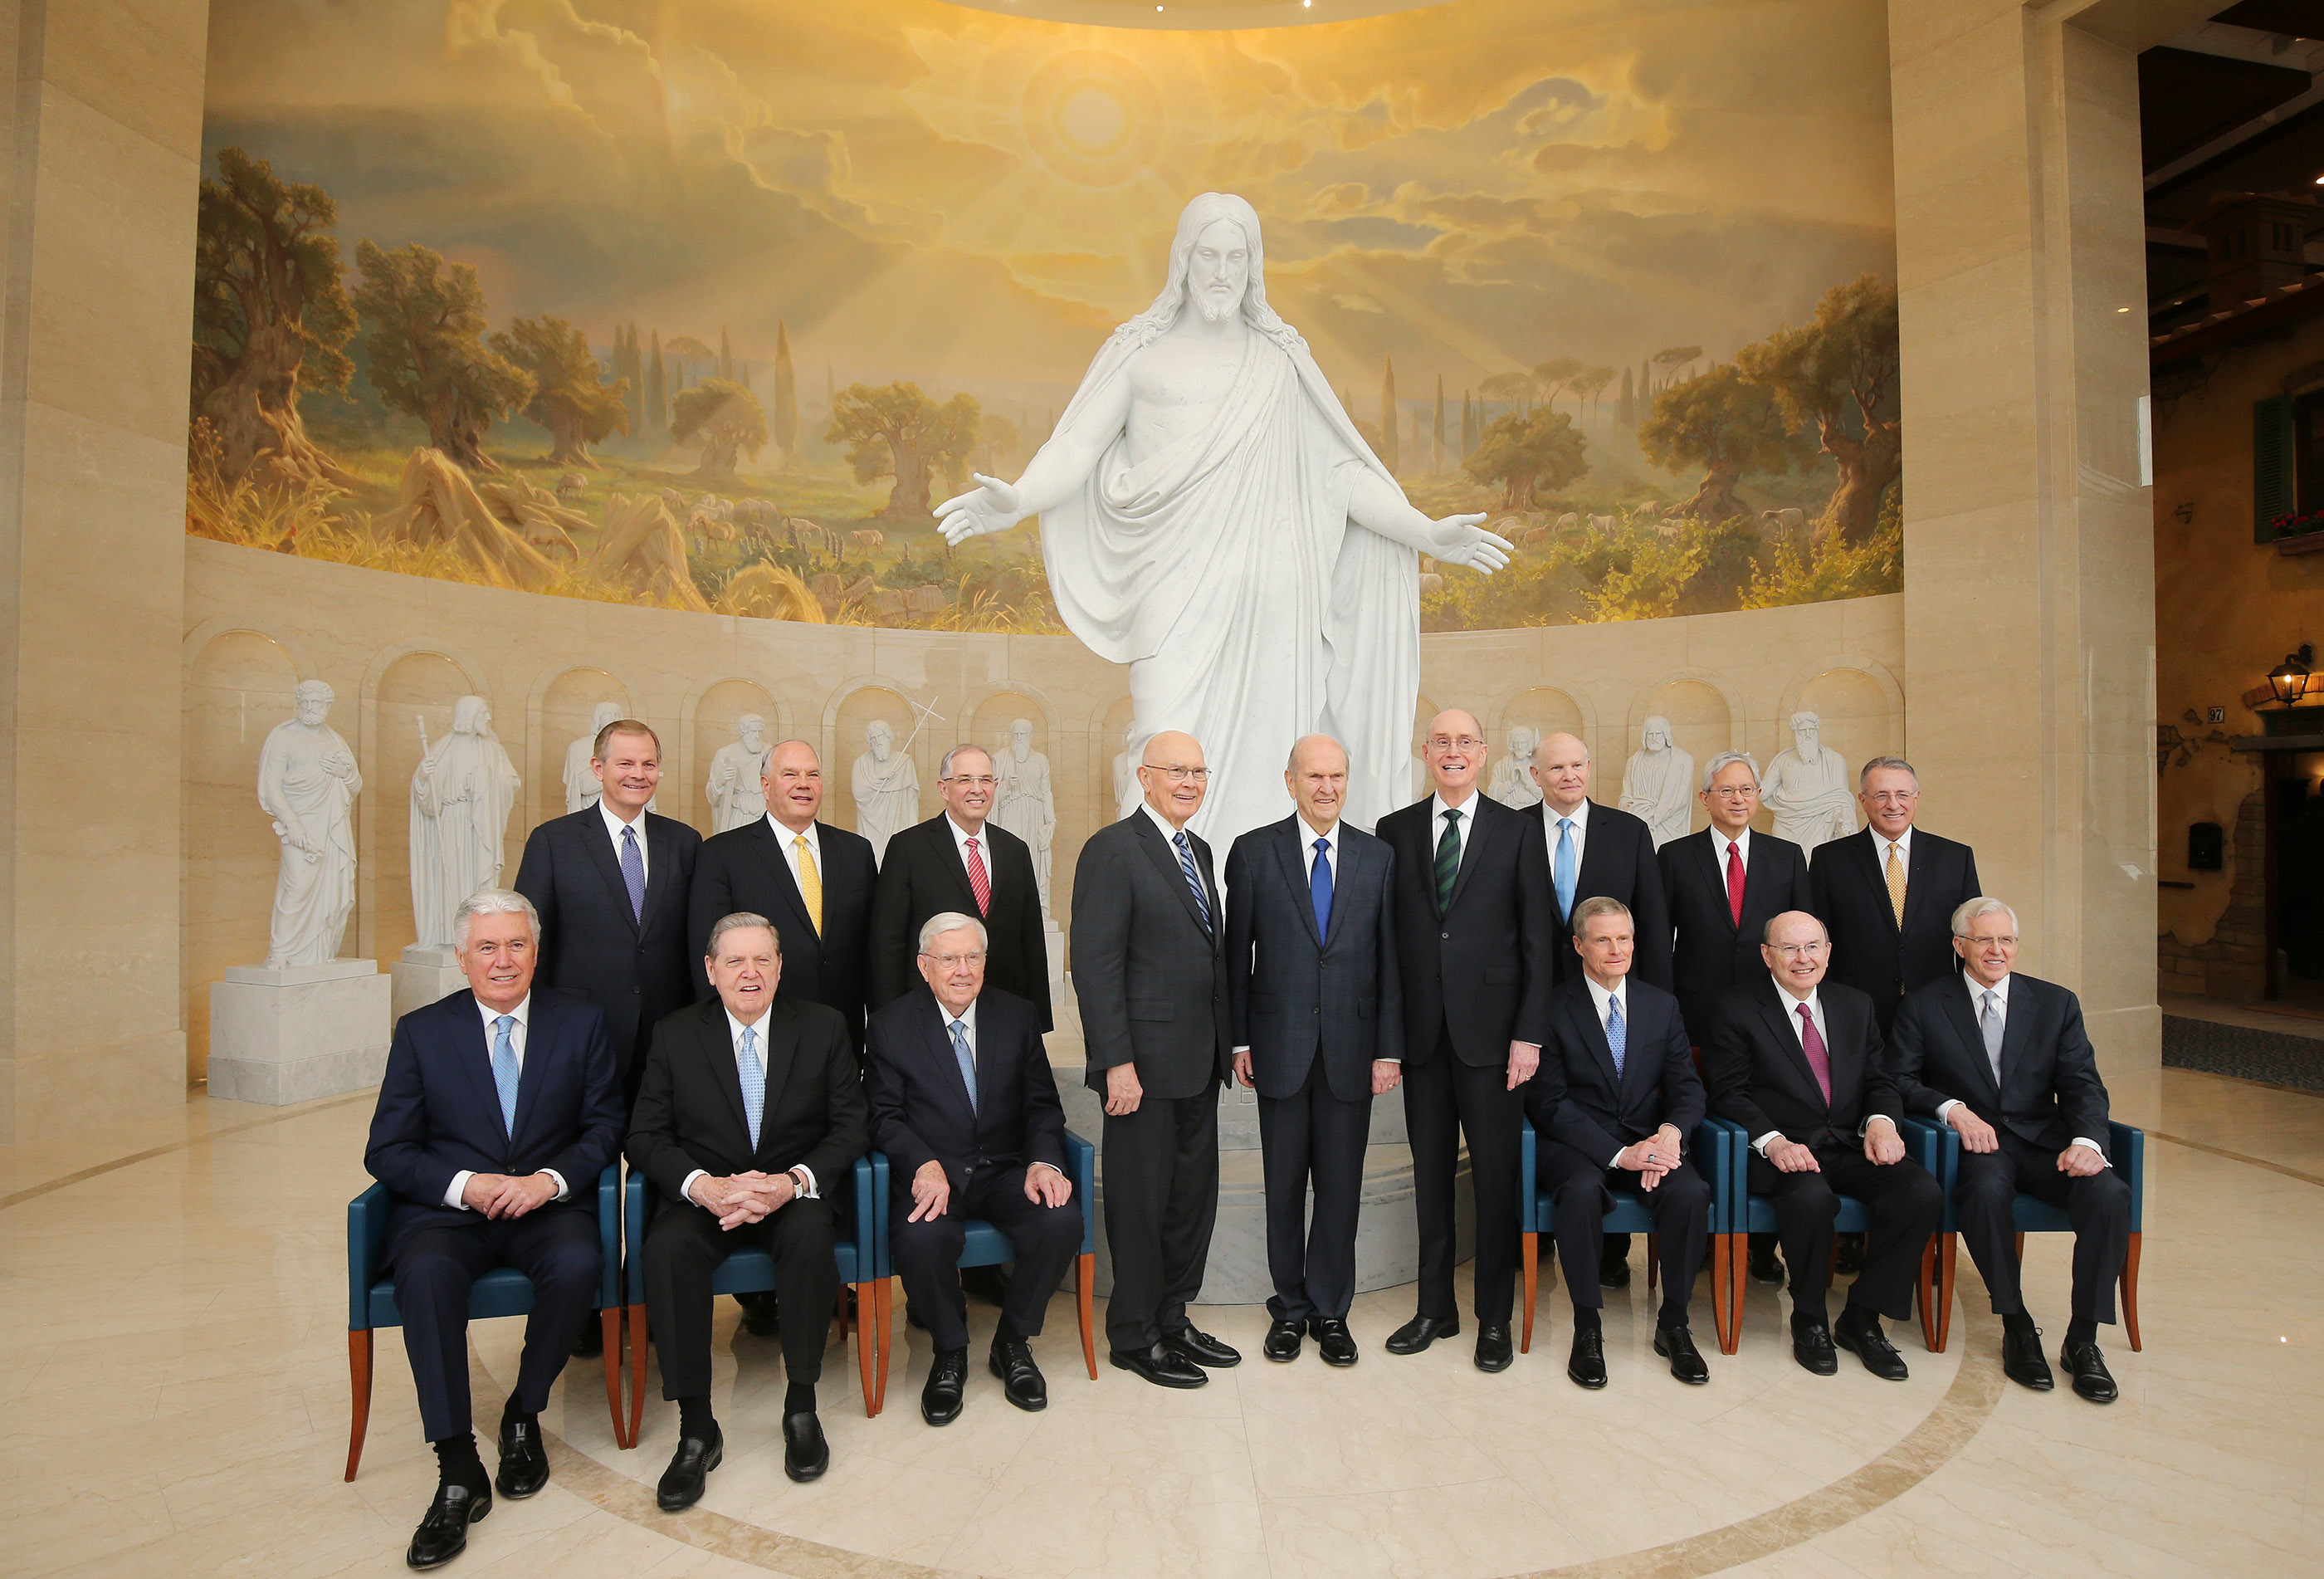 Rome Temple a 'hinge-point' in Latter-day Saint history